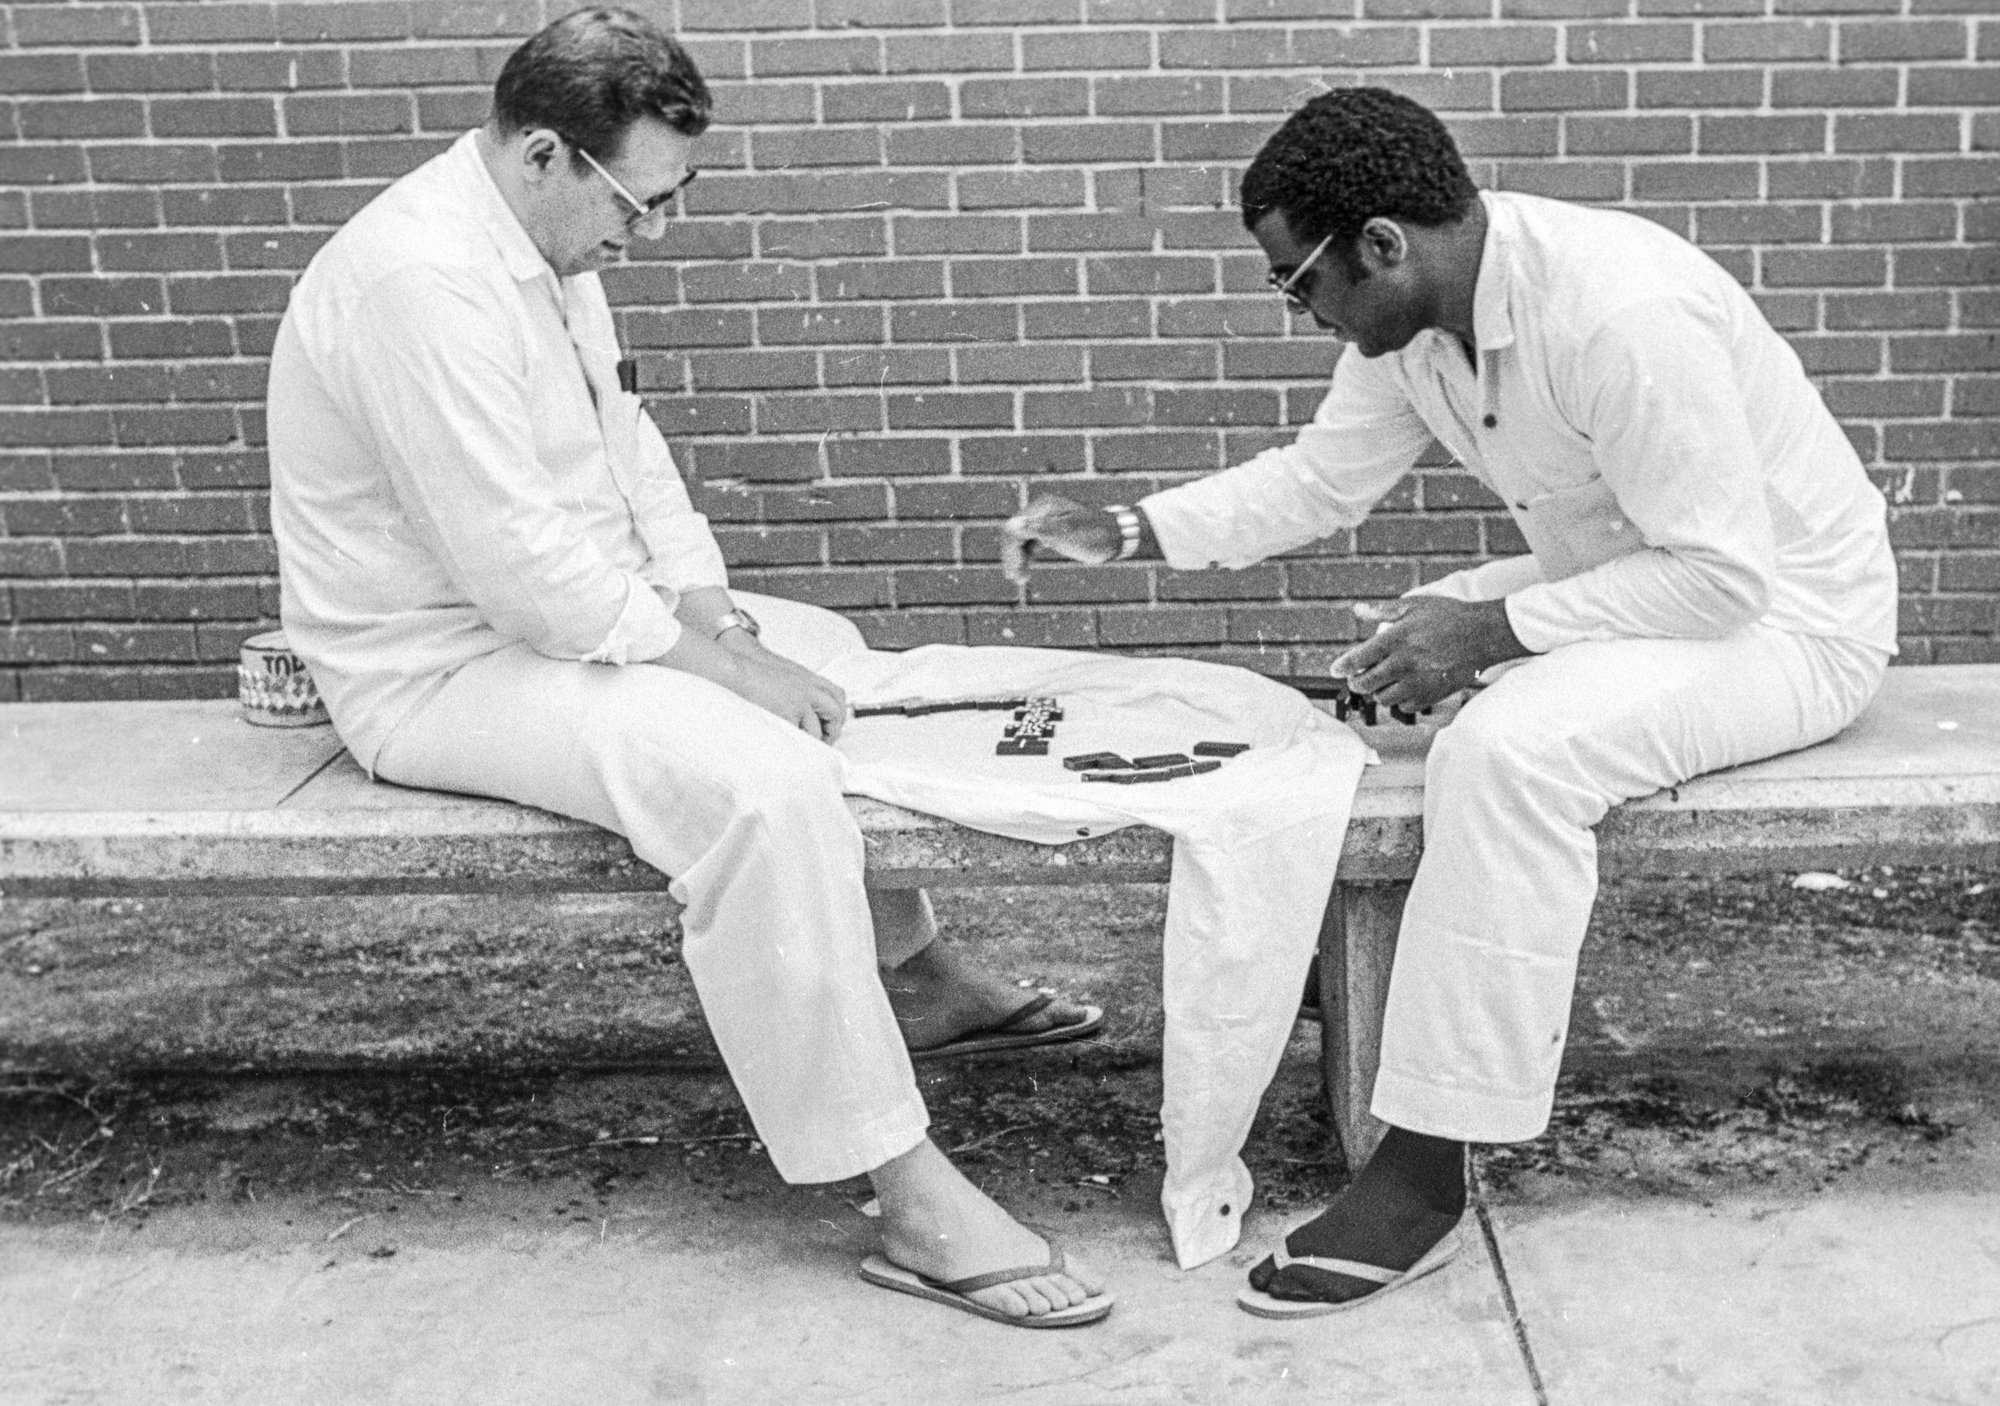 Raymond Riles, right, with Ronald O'Bryan at the Ellis Unit in Huntsville, Texas, in 1979. In that era, incarcerated people on death row could go to the exercise yard for three 90-minute periods a week.